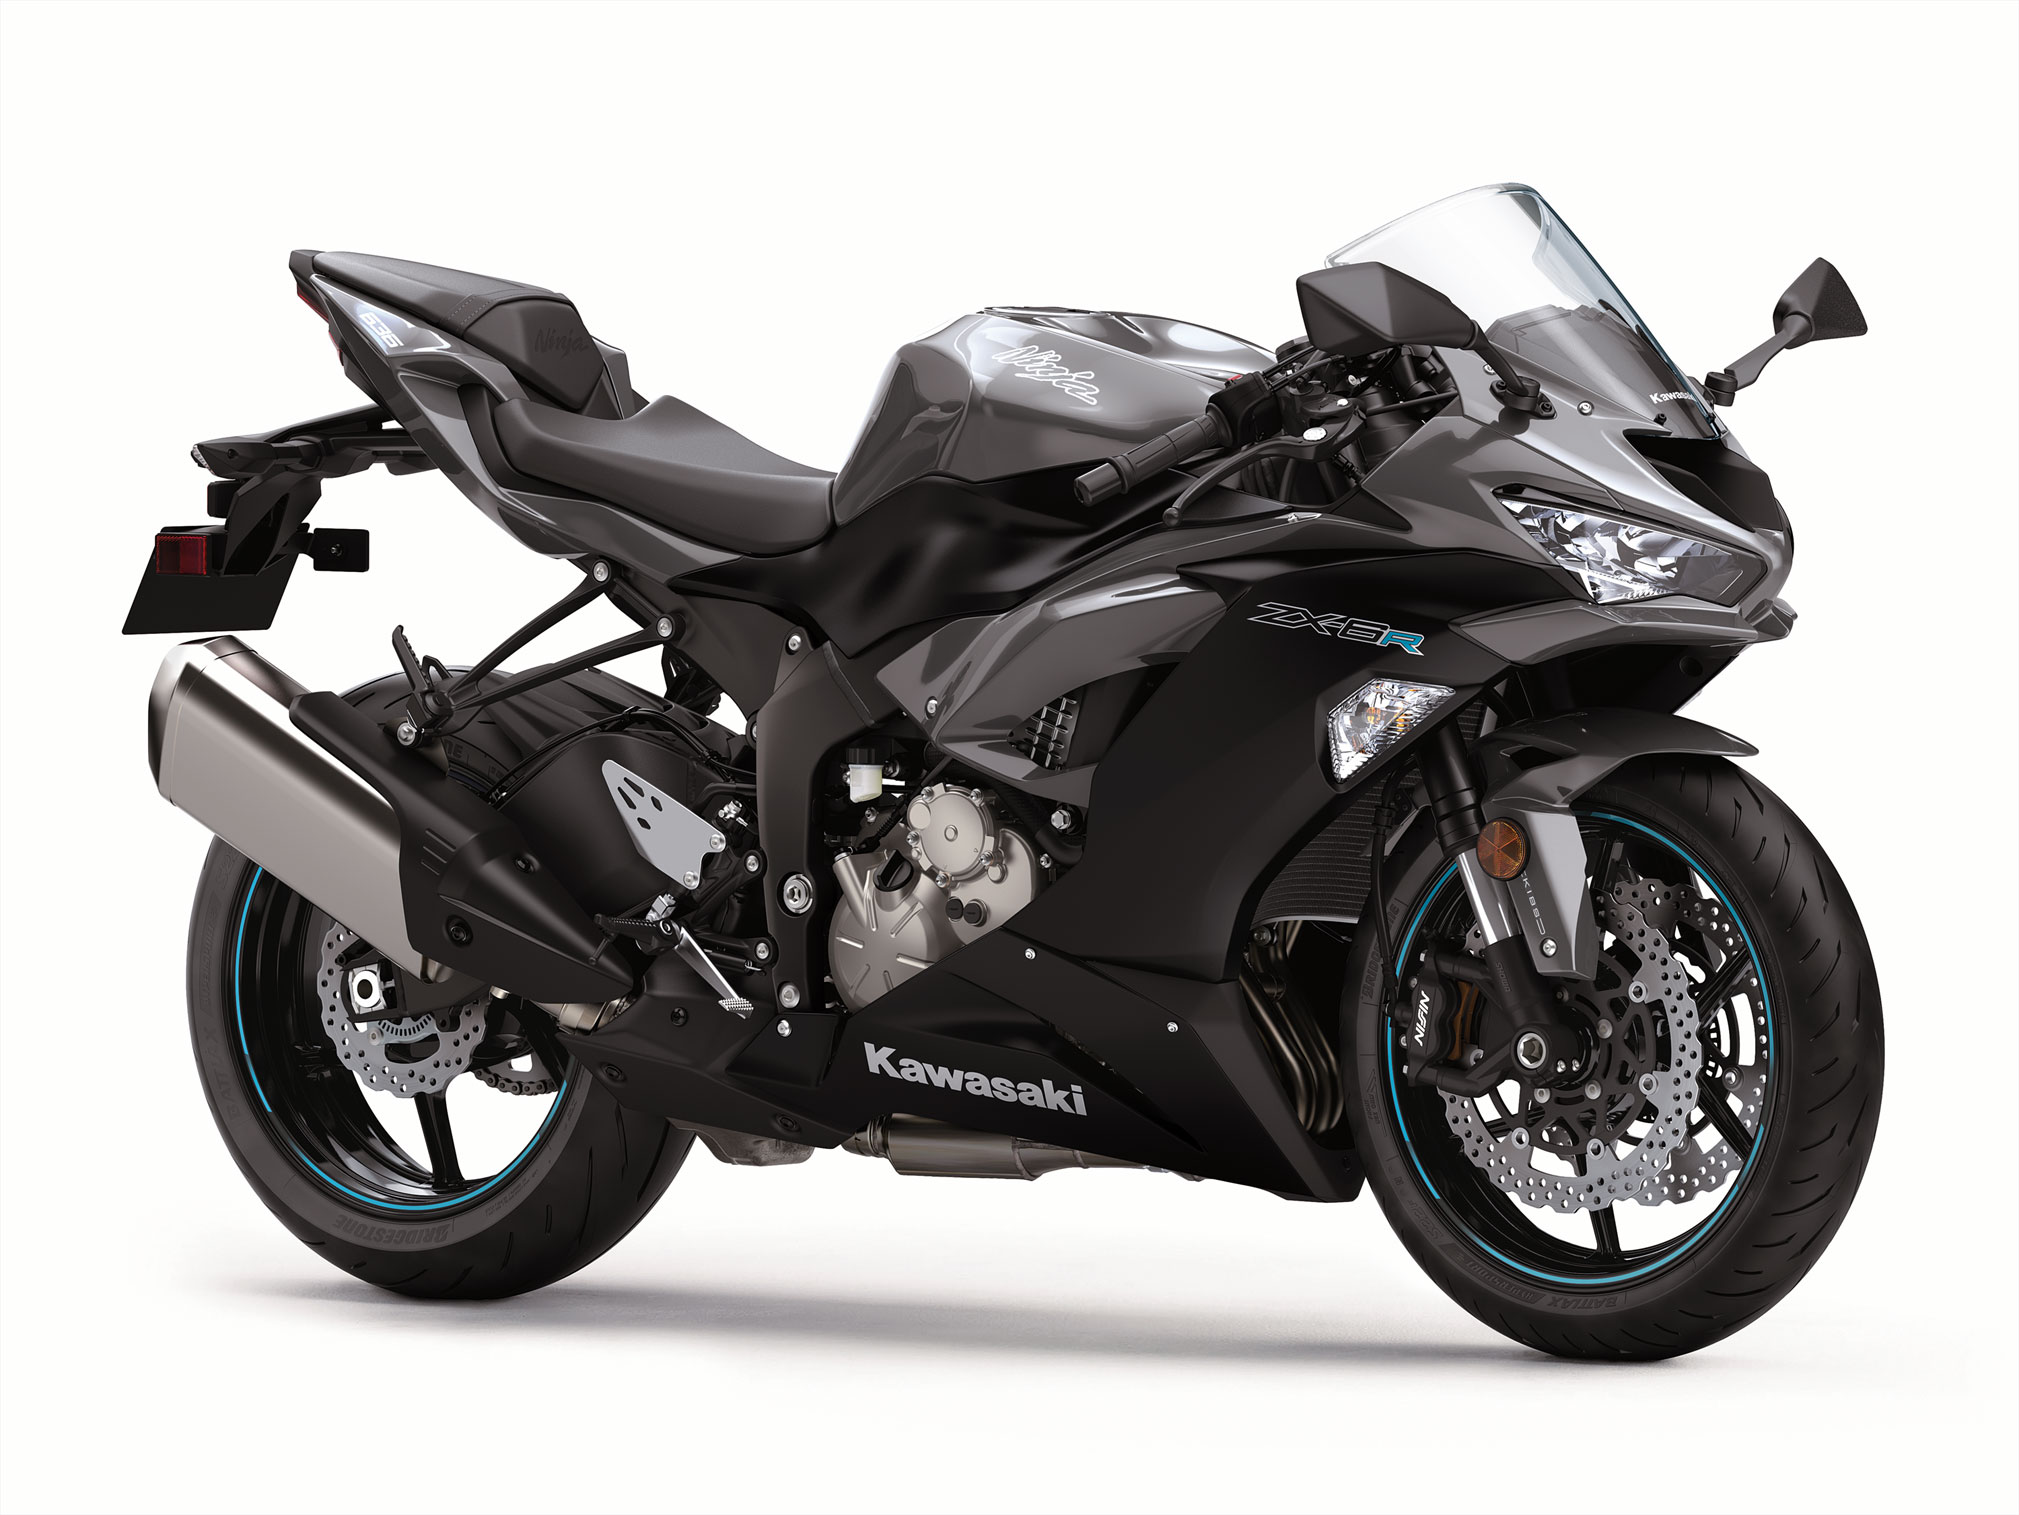 2019 kawasaki ninja zx 6r abs guide totalmotorcycle. Black Bedroom Furniture Sets. Home Design Ideas